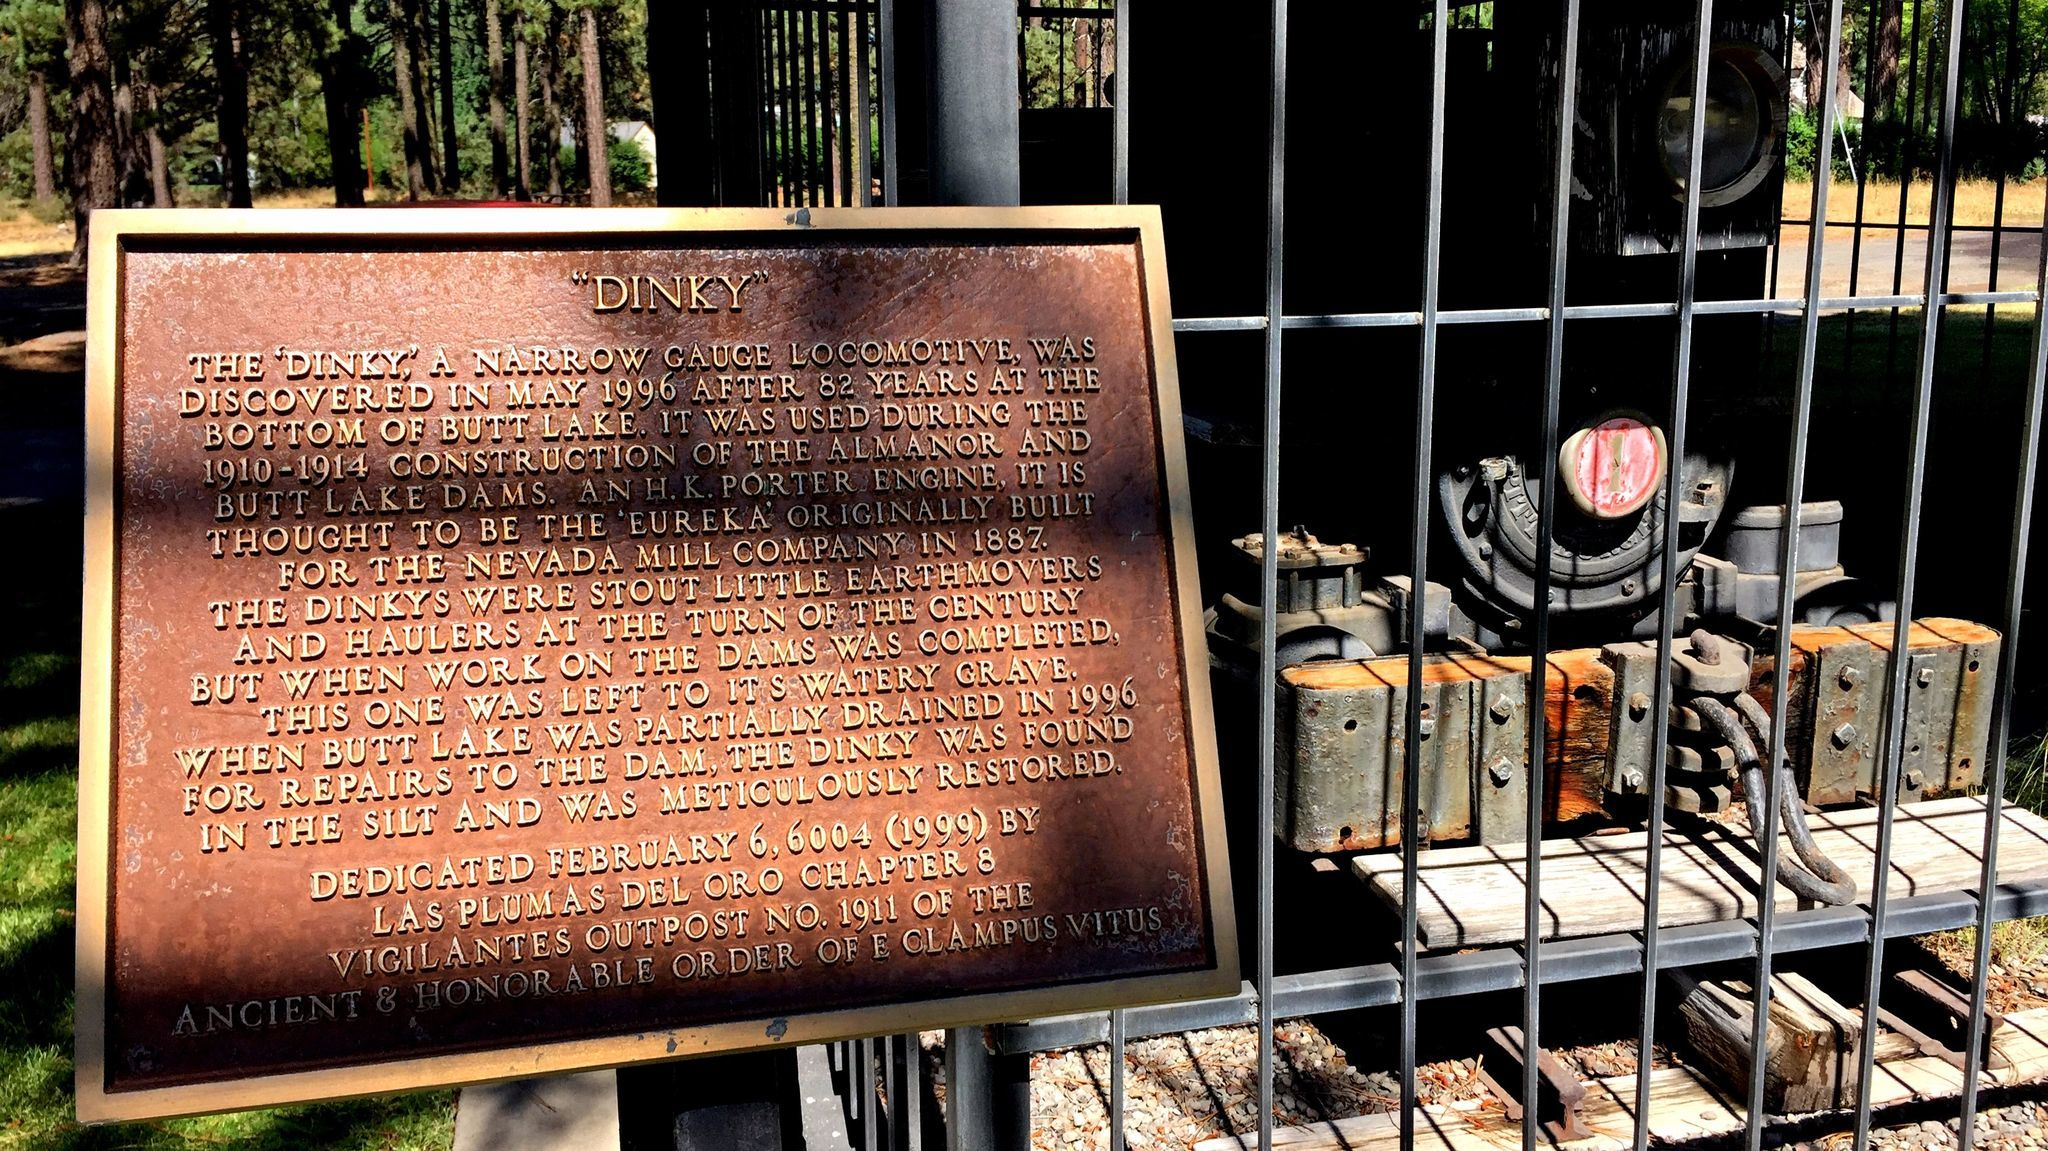 A plaque placed by E Clampus Vitus stands beside the Butt Lake Dinky in Chester, Calif.